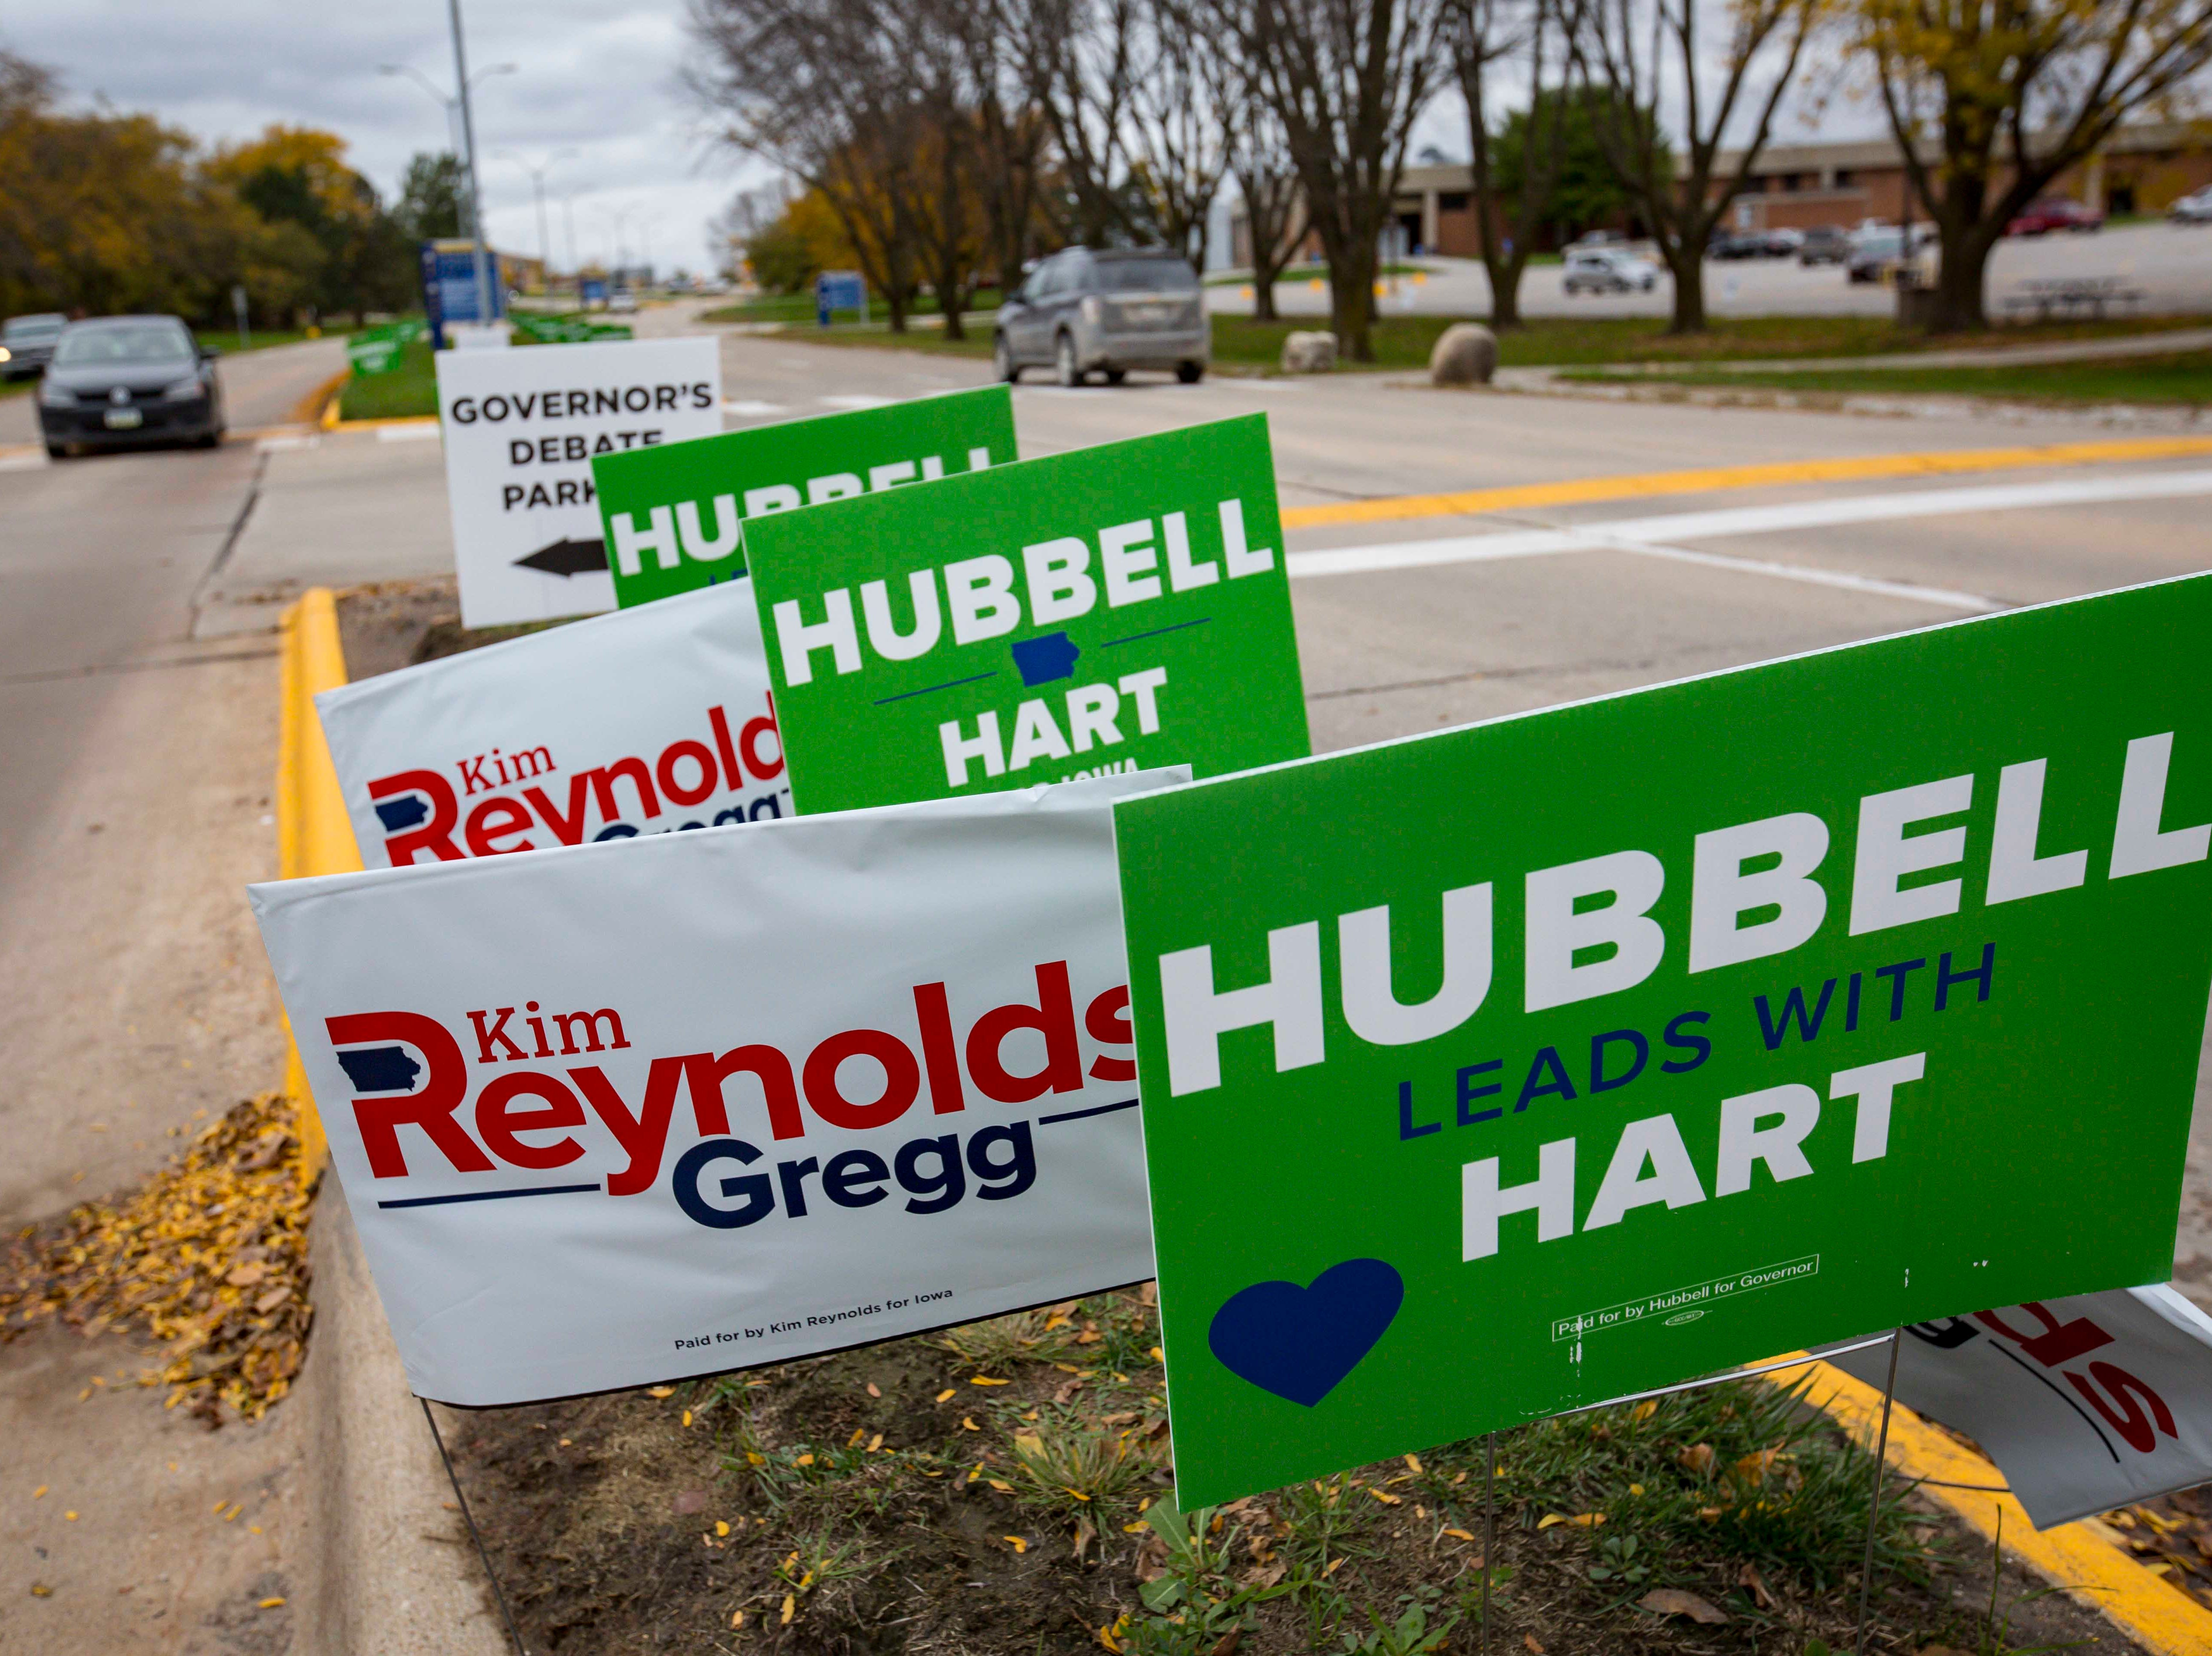 Campaign signs for Republican Iowa Gov. Kim Reynolds and Democratic challenger Fred Hubbell Wednesday, Oct. 10, 2018, at Des Moines Area Community College in Ankeny, Iowa.